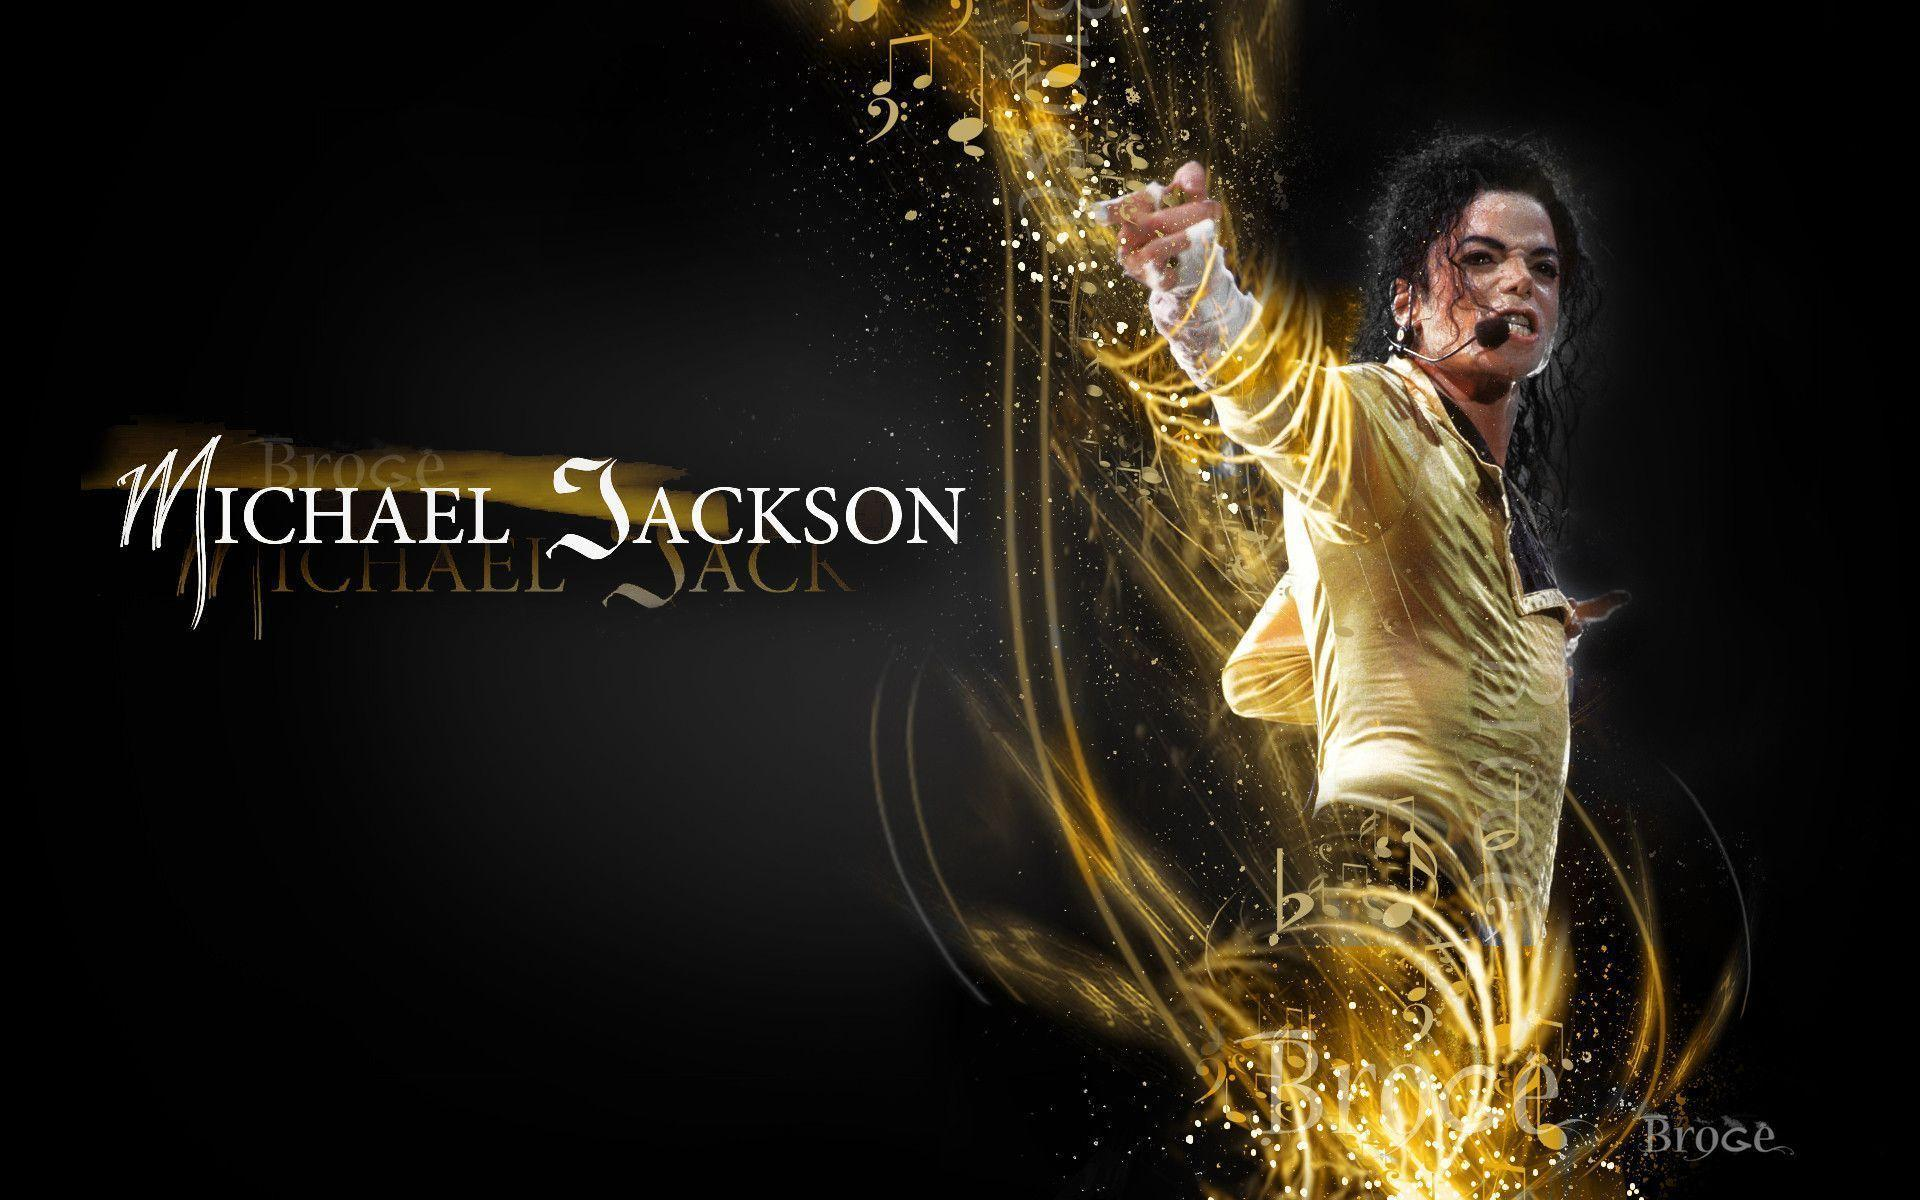 Michael Jackson Wallpapers | High Definition Wallpapers